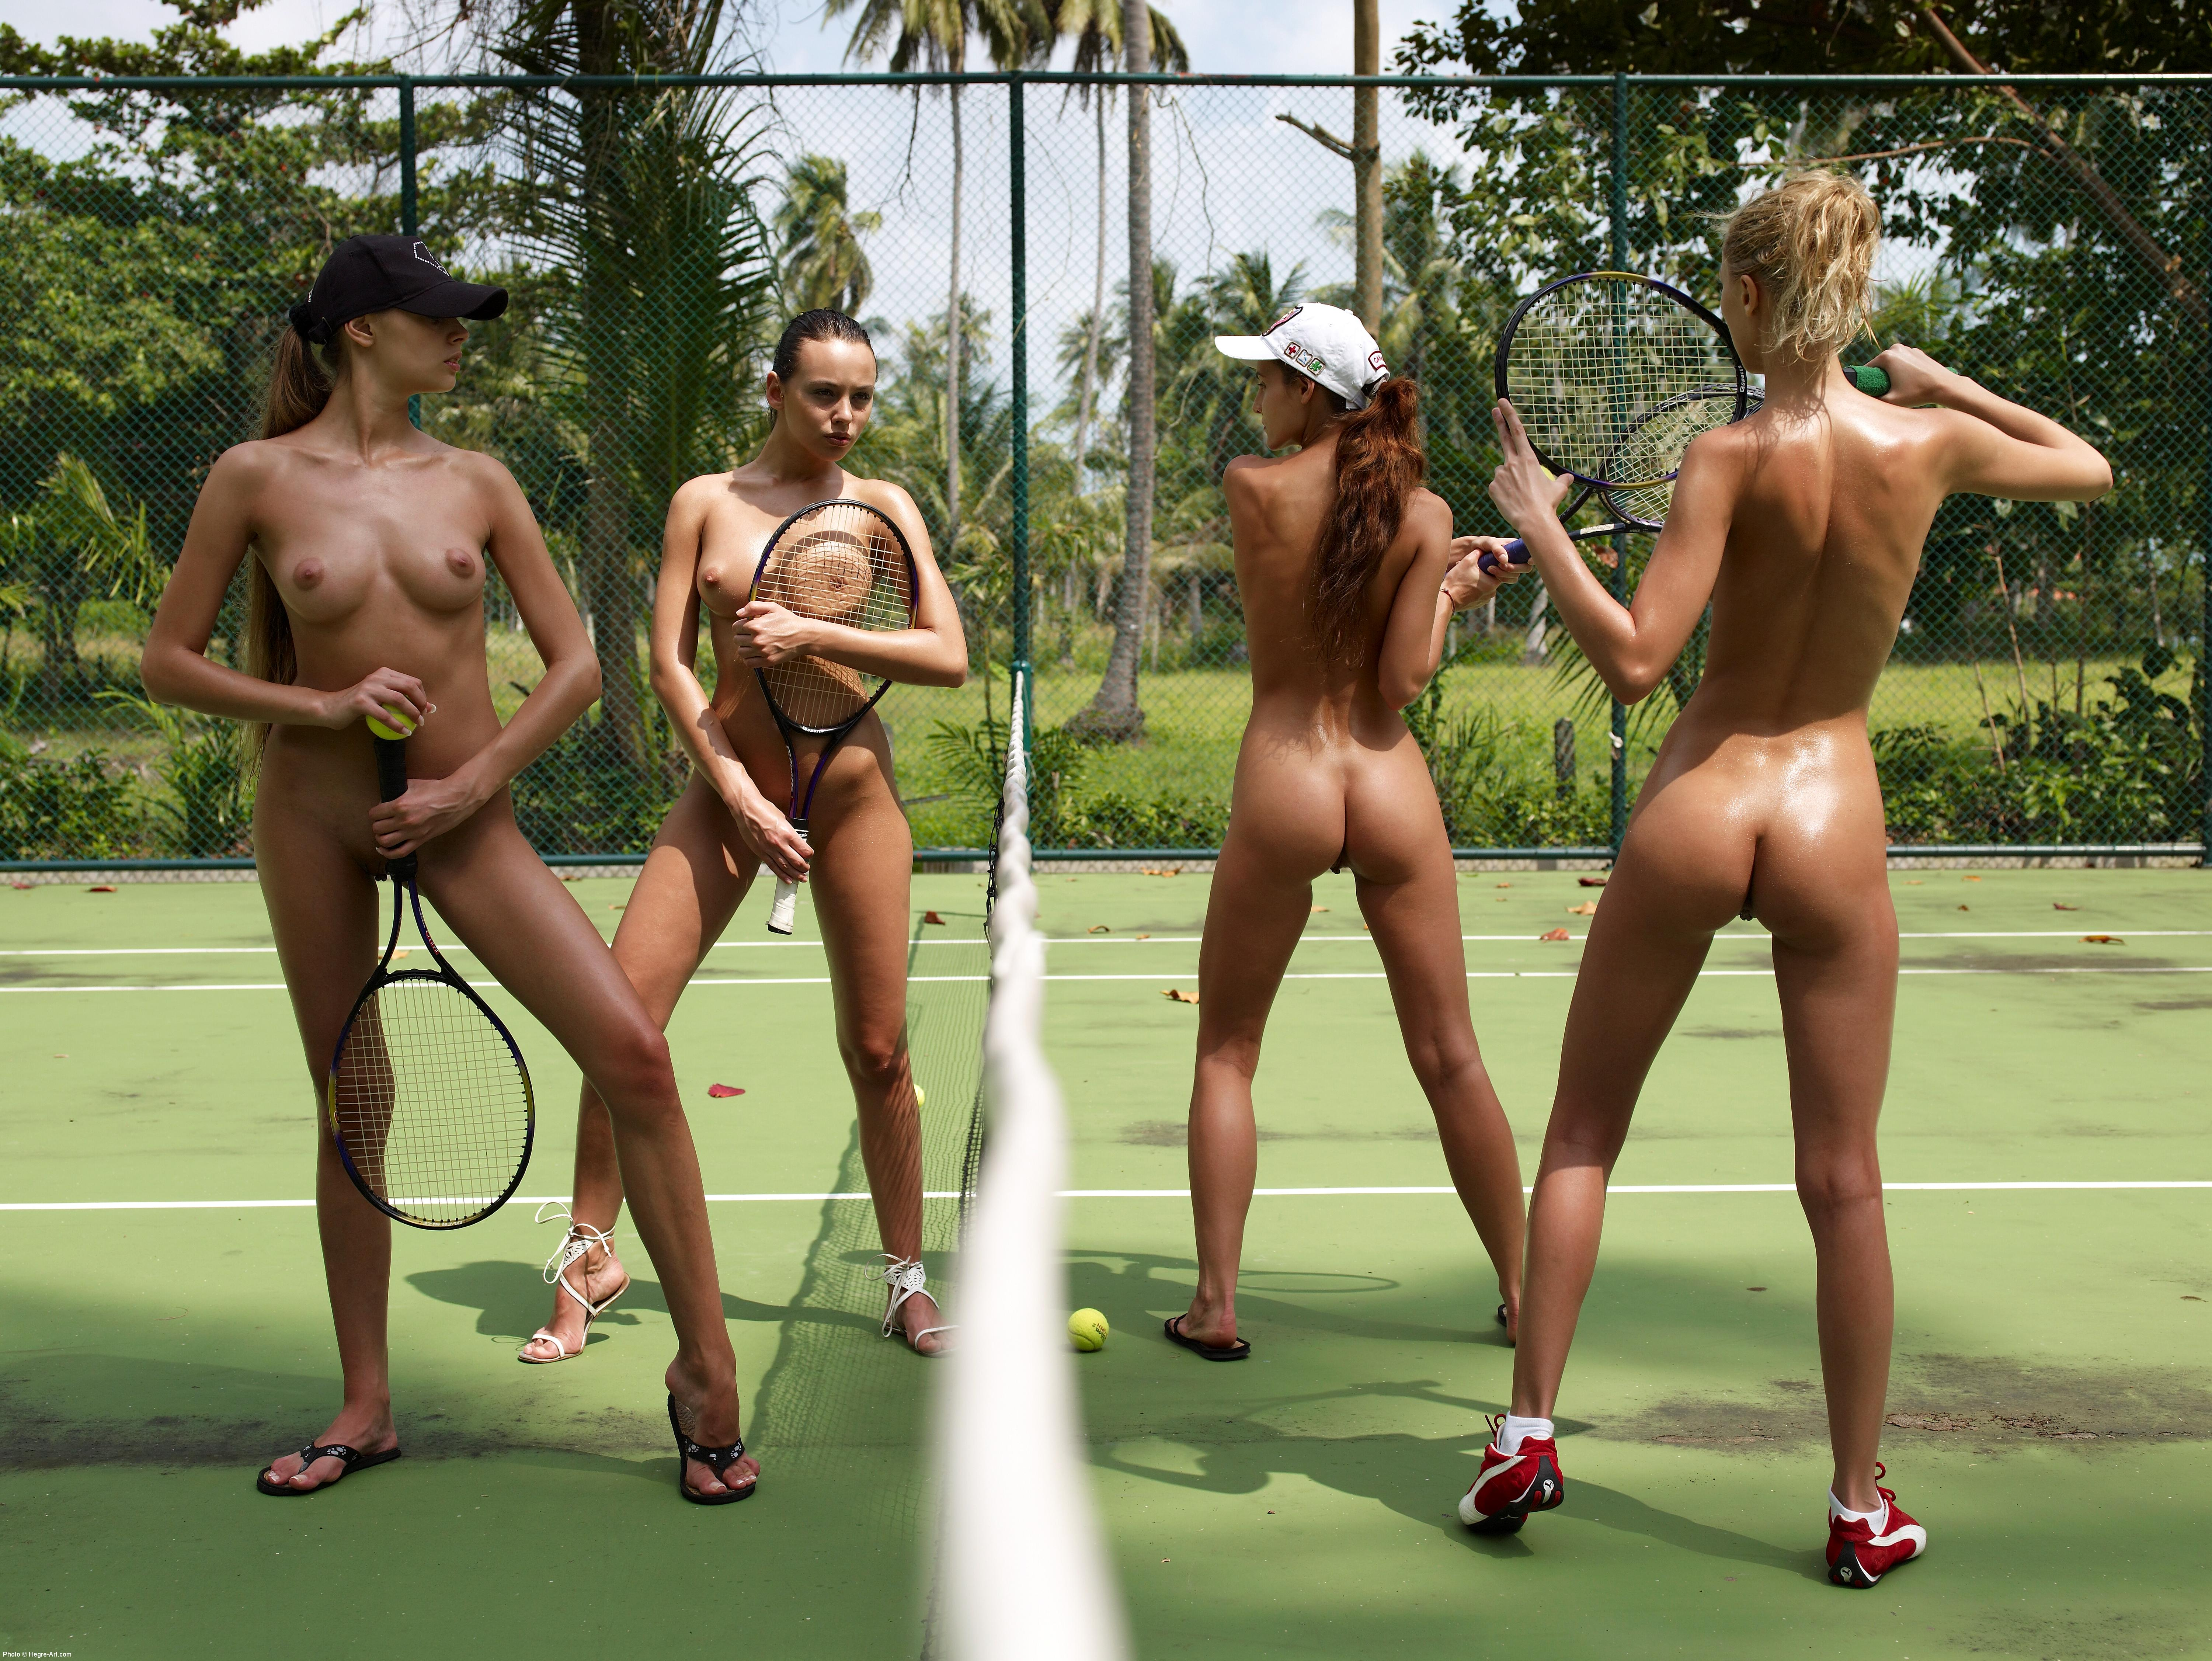 terry polo in playboy